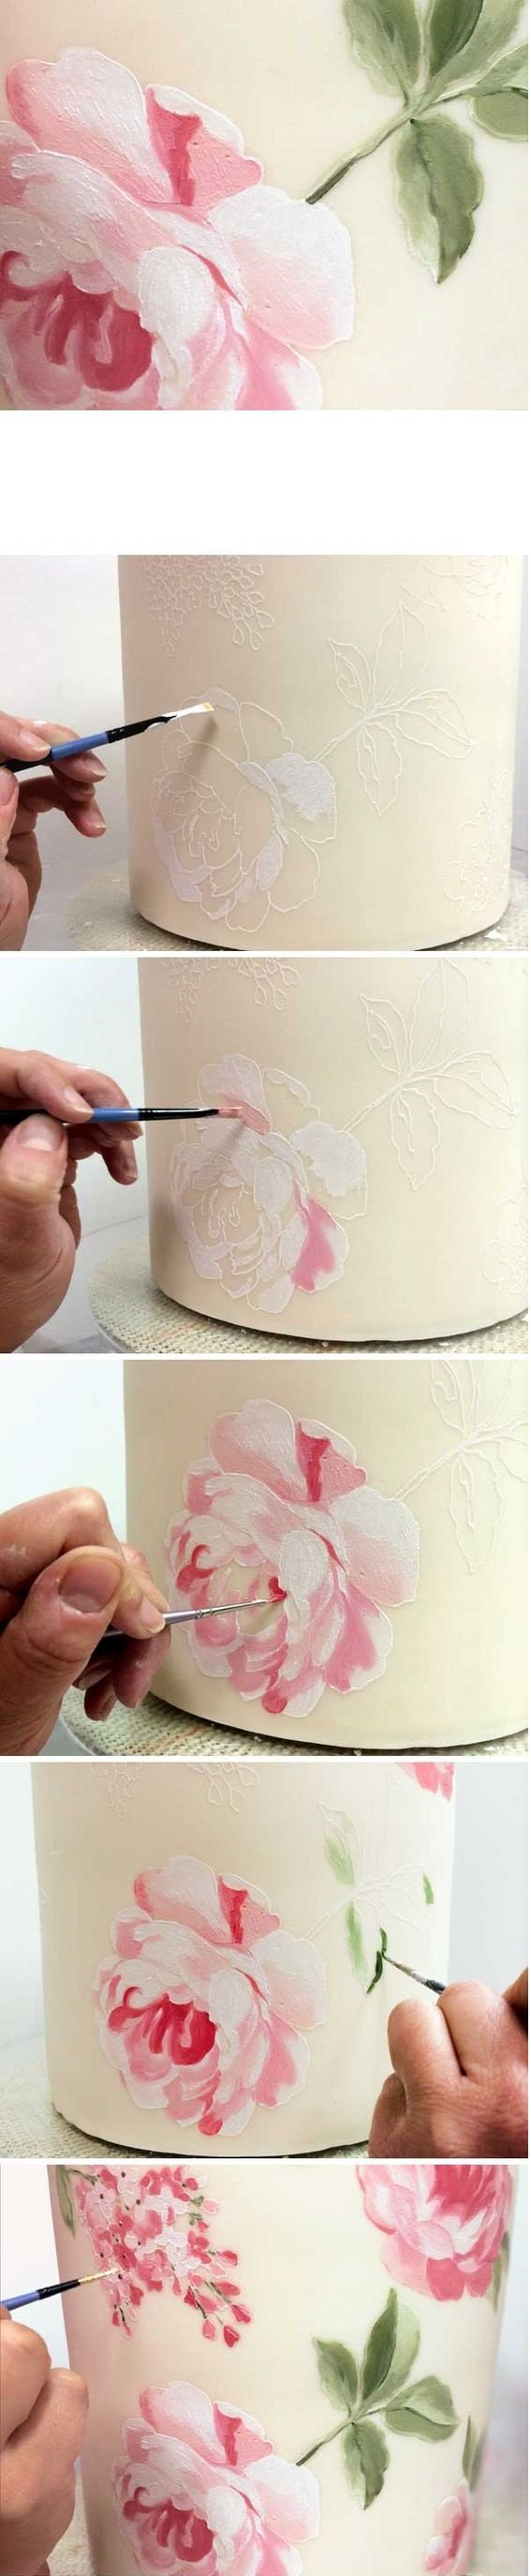 paintbrush and stencil cakes